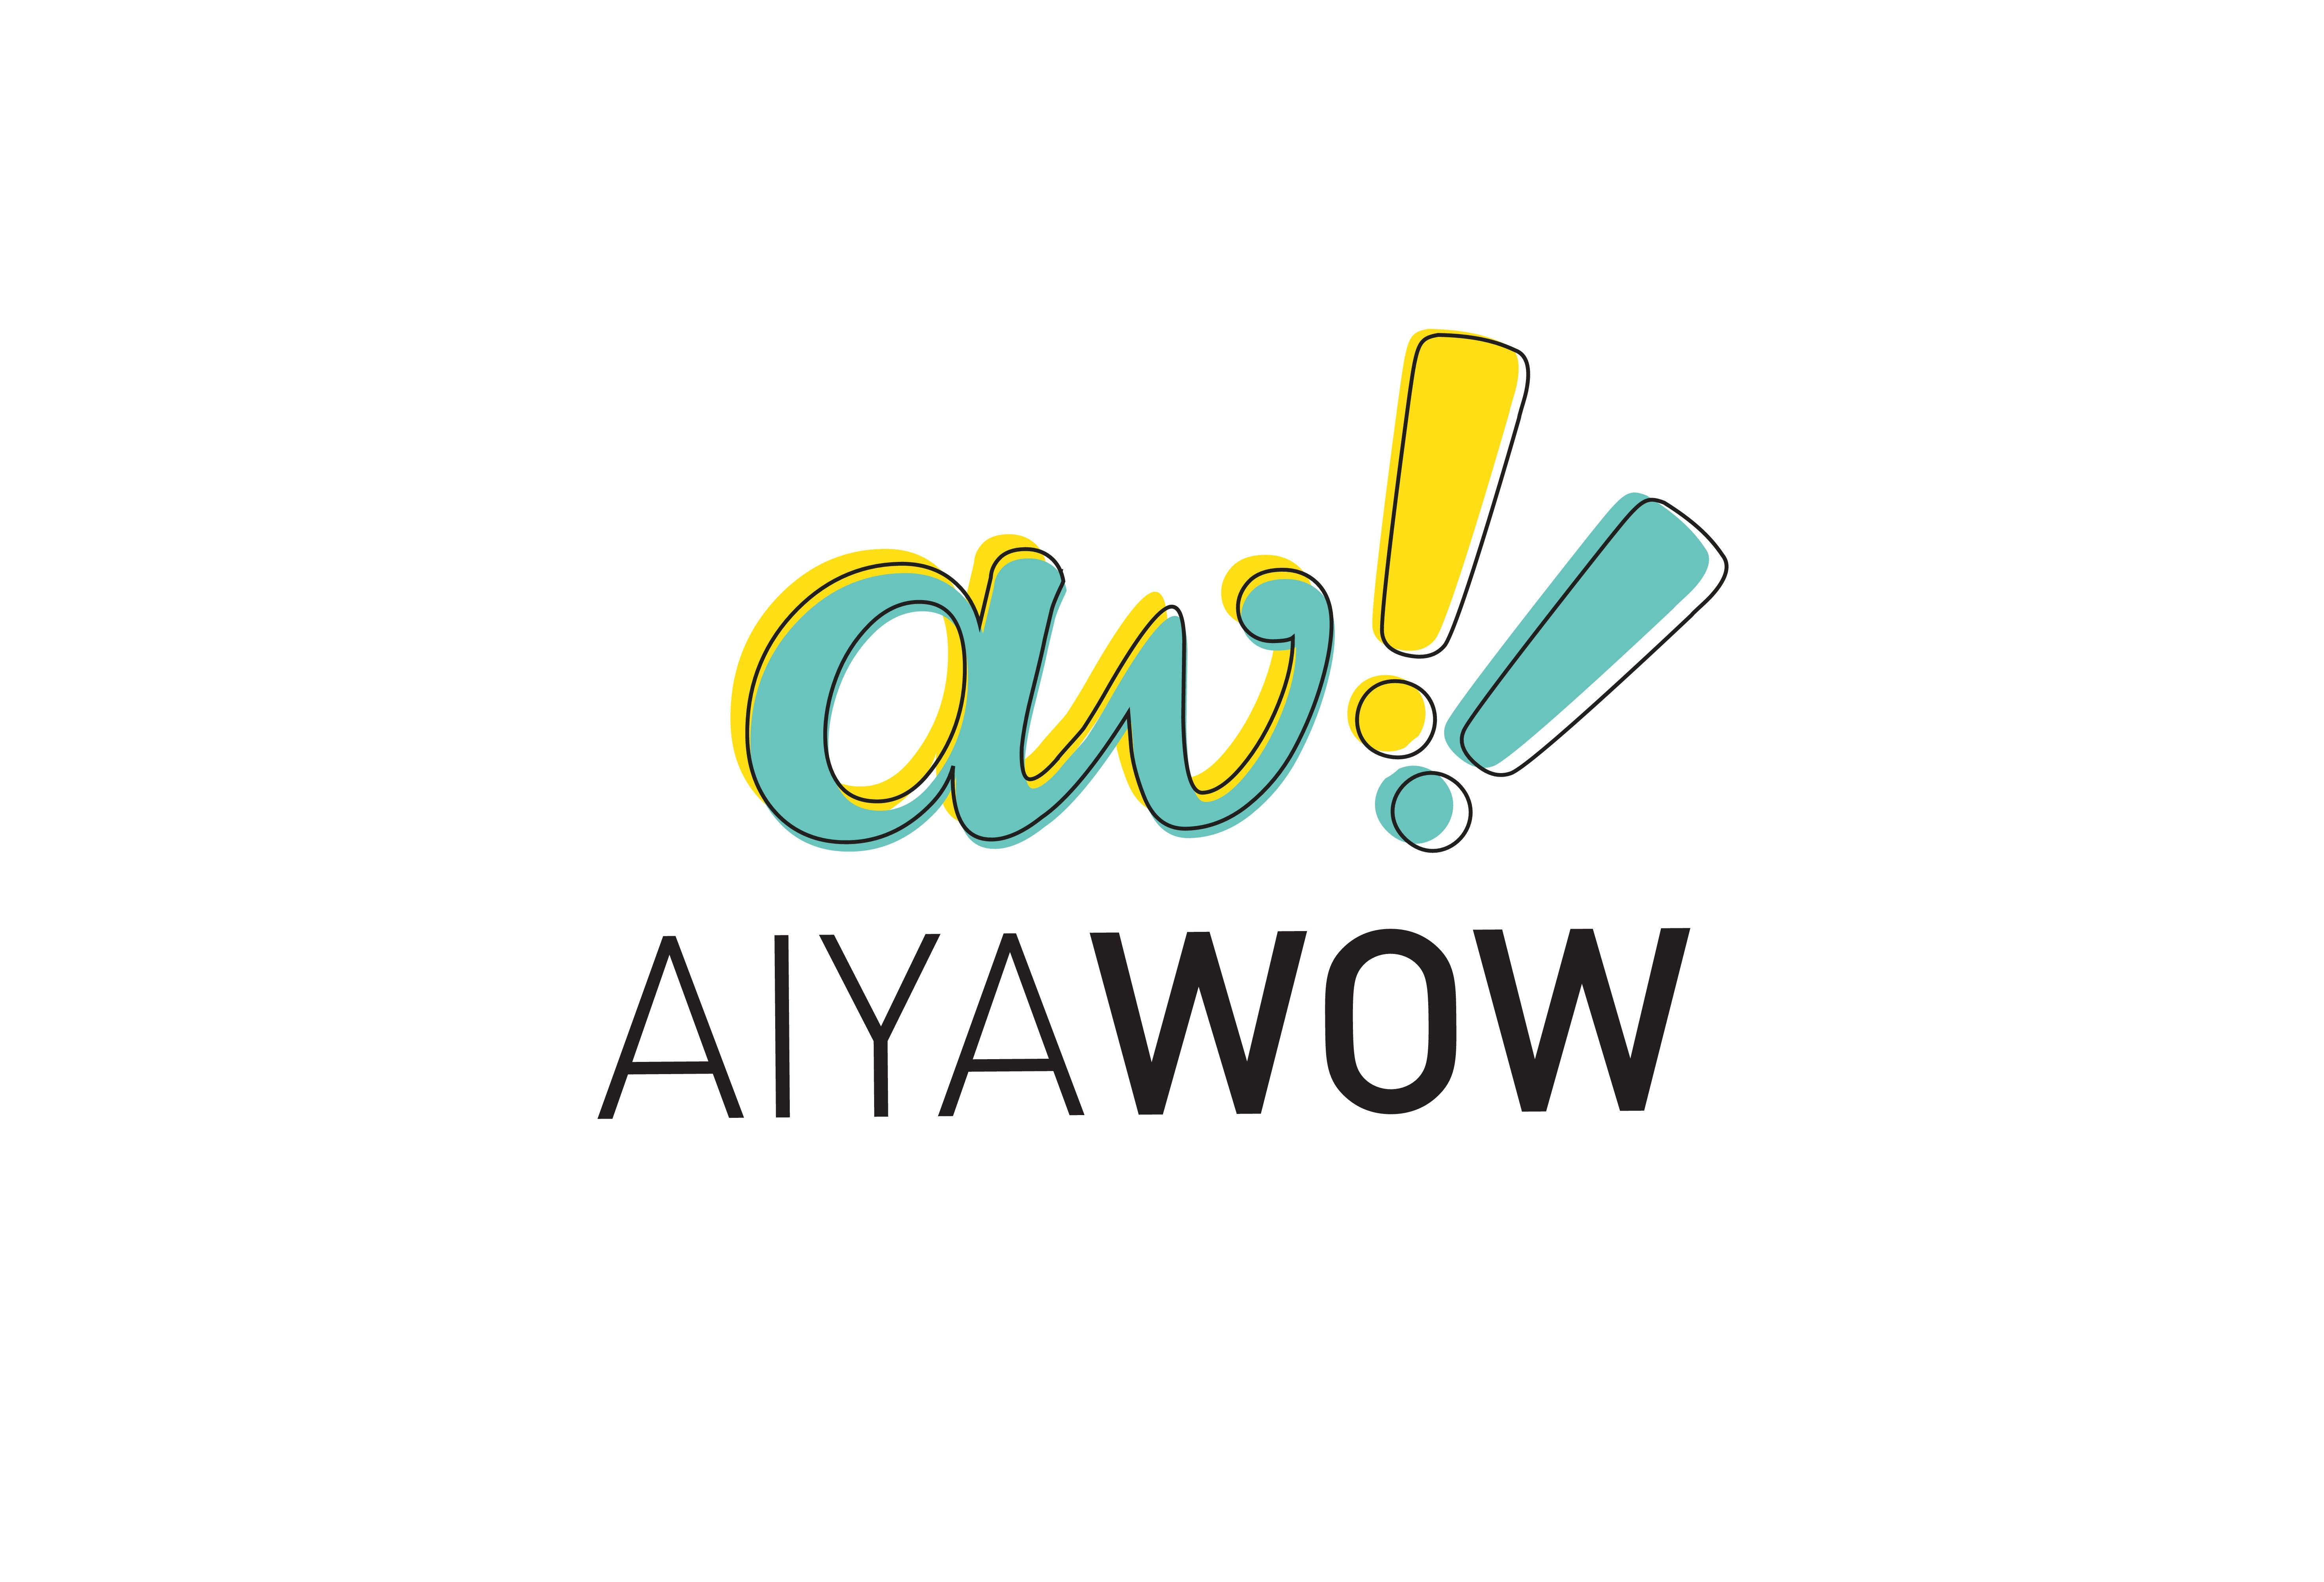 Logo to Discover cultural events with AiyaWow (AWEsome Events)